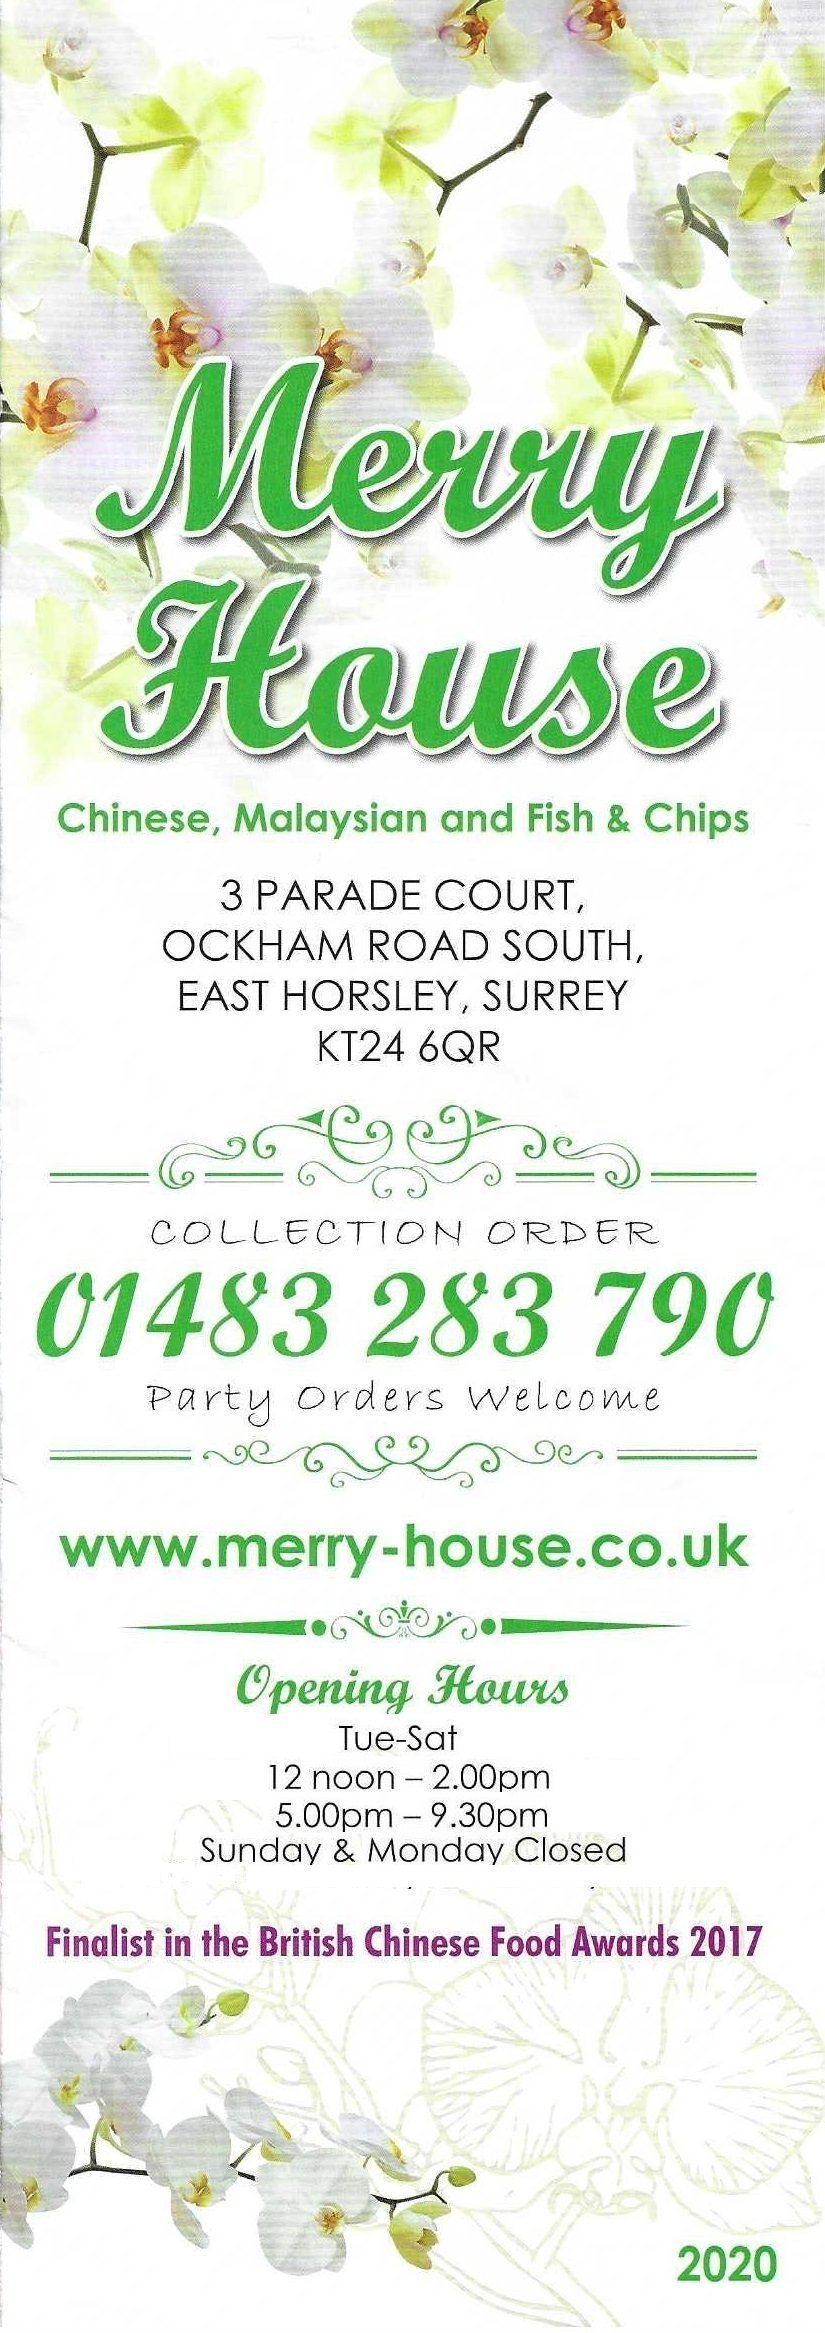 Merry House revised opening hours